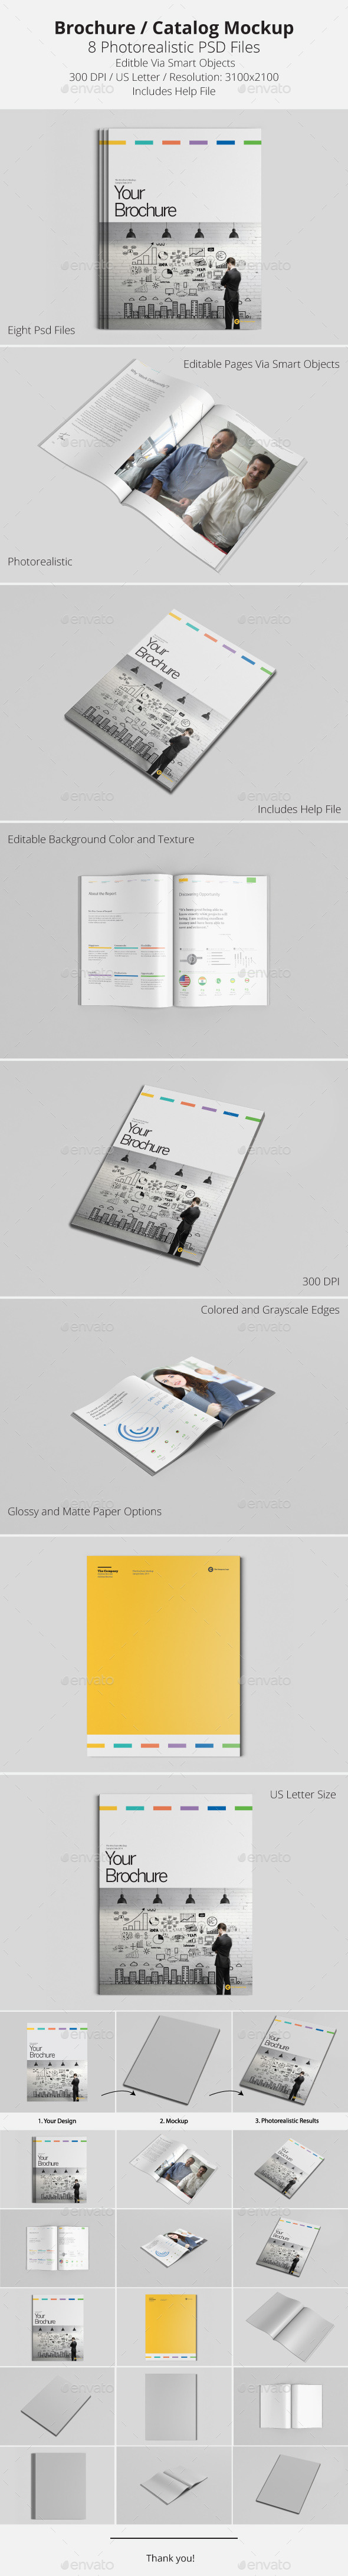 GraphicRiver Brochure Catalog Mockup 9669397